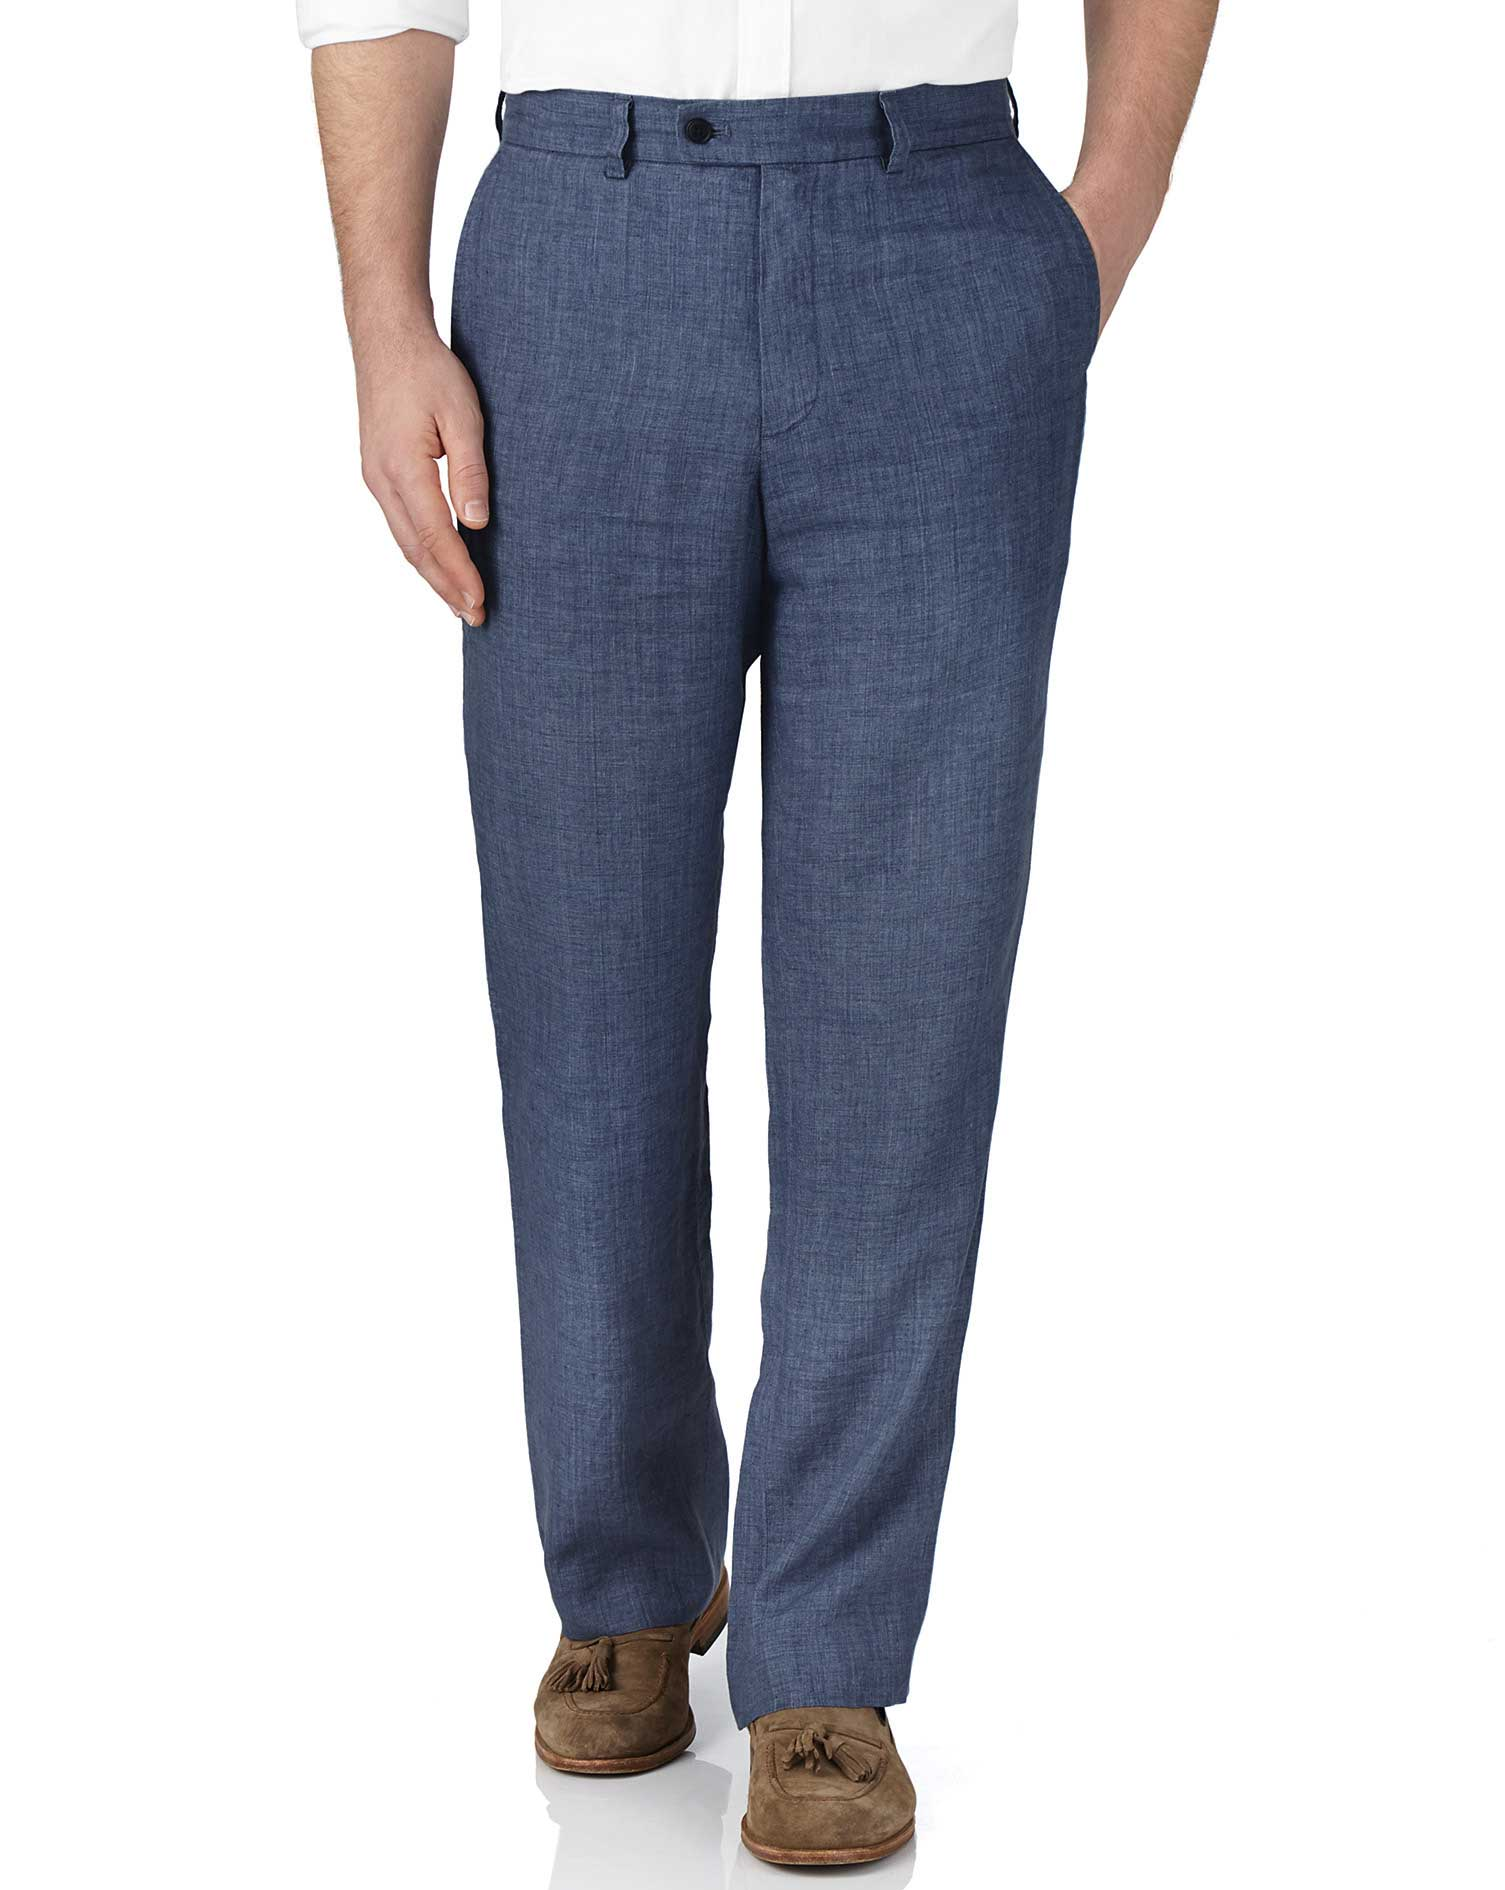 Blue Classic Fit Linen Trousers Size W34 L32 by Charles Tyrwhitt